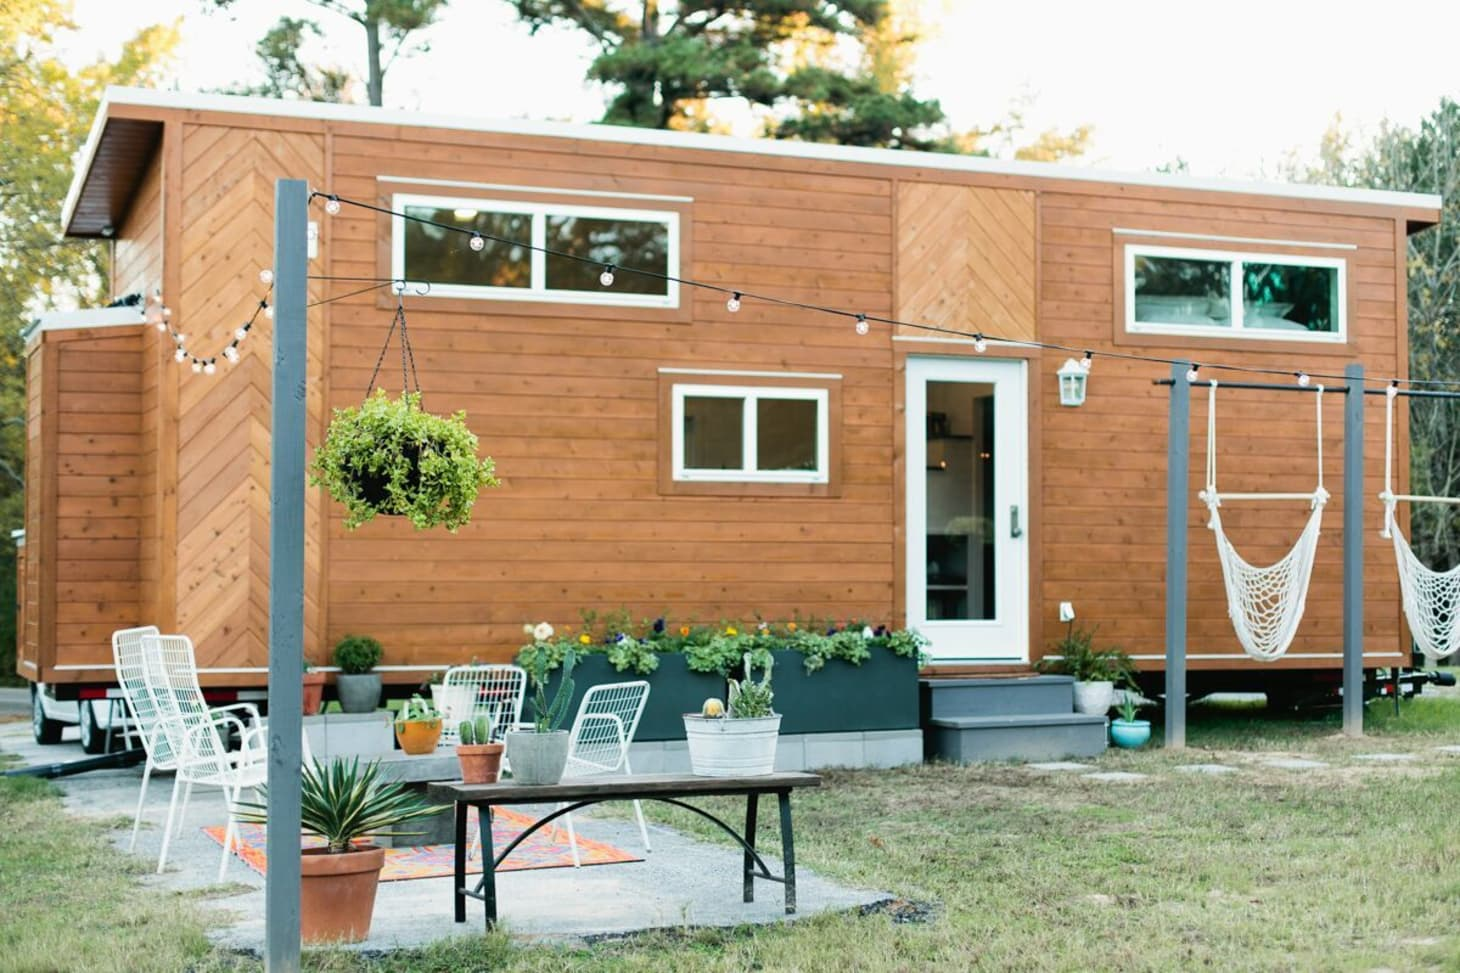 Move In Ready Luxury Tiny Houses Starting at 80K | Apartment